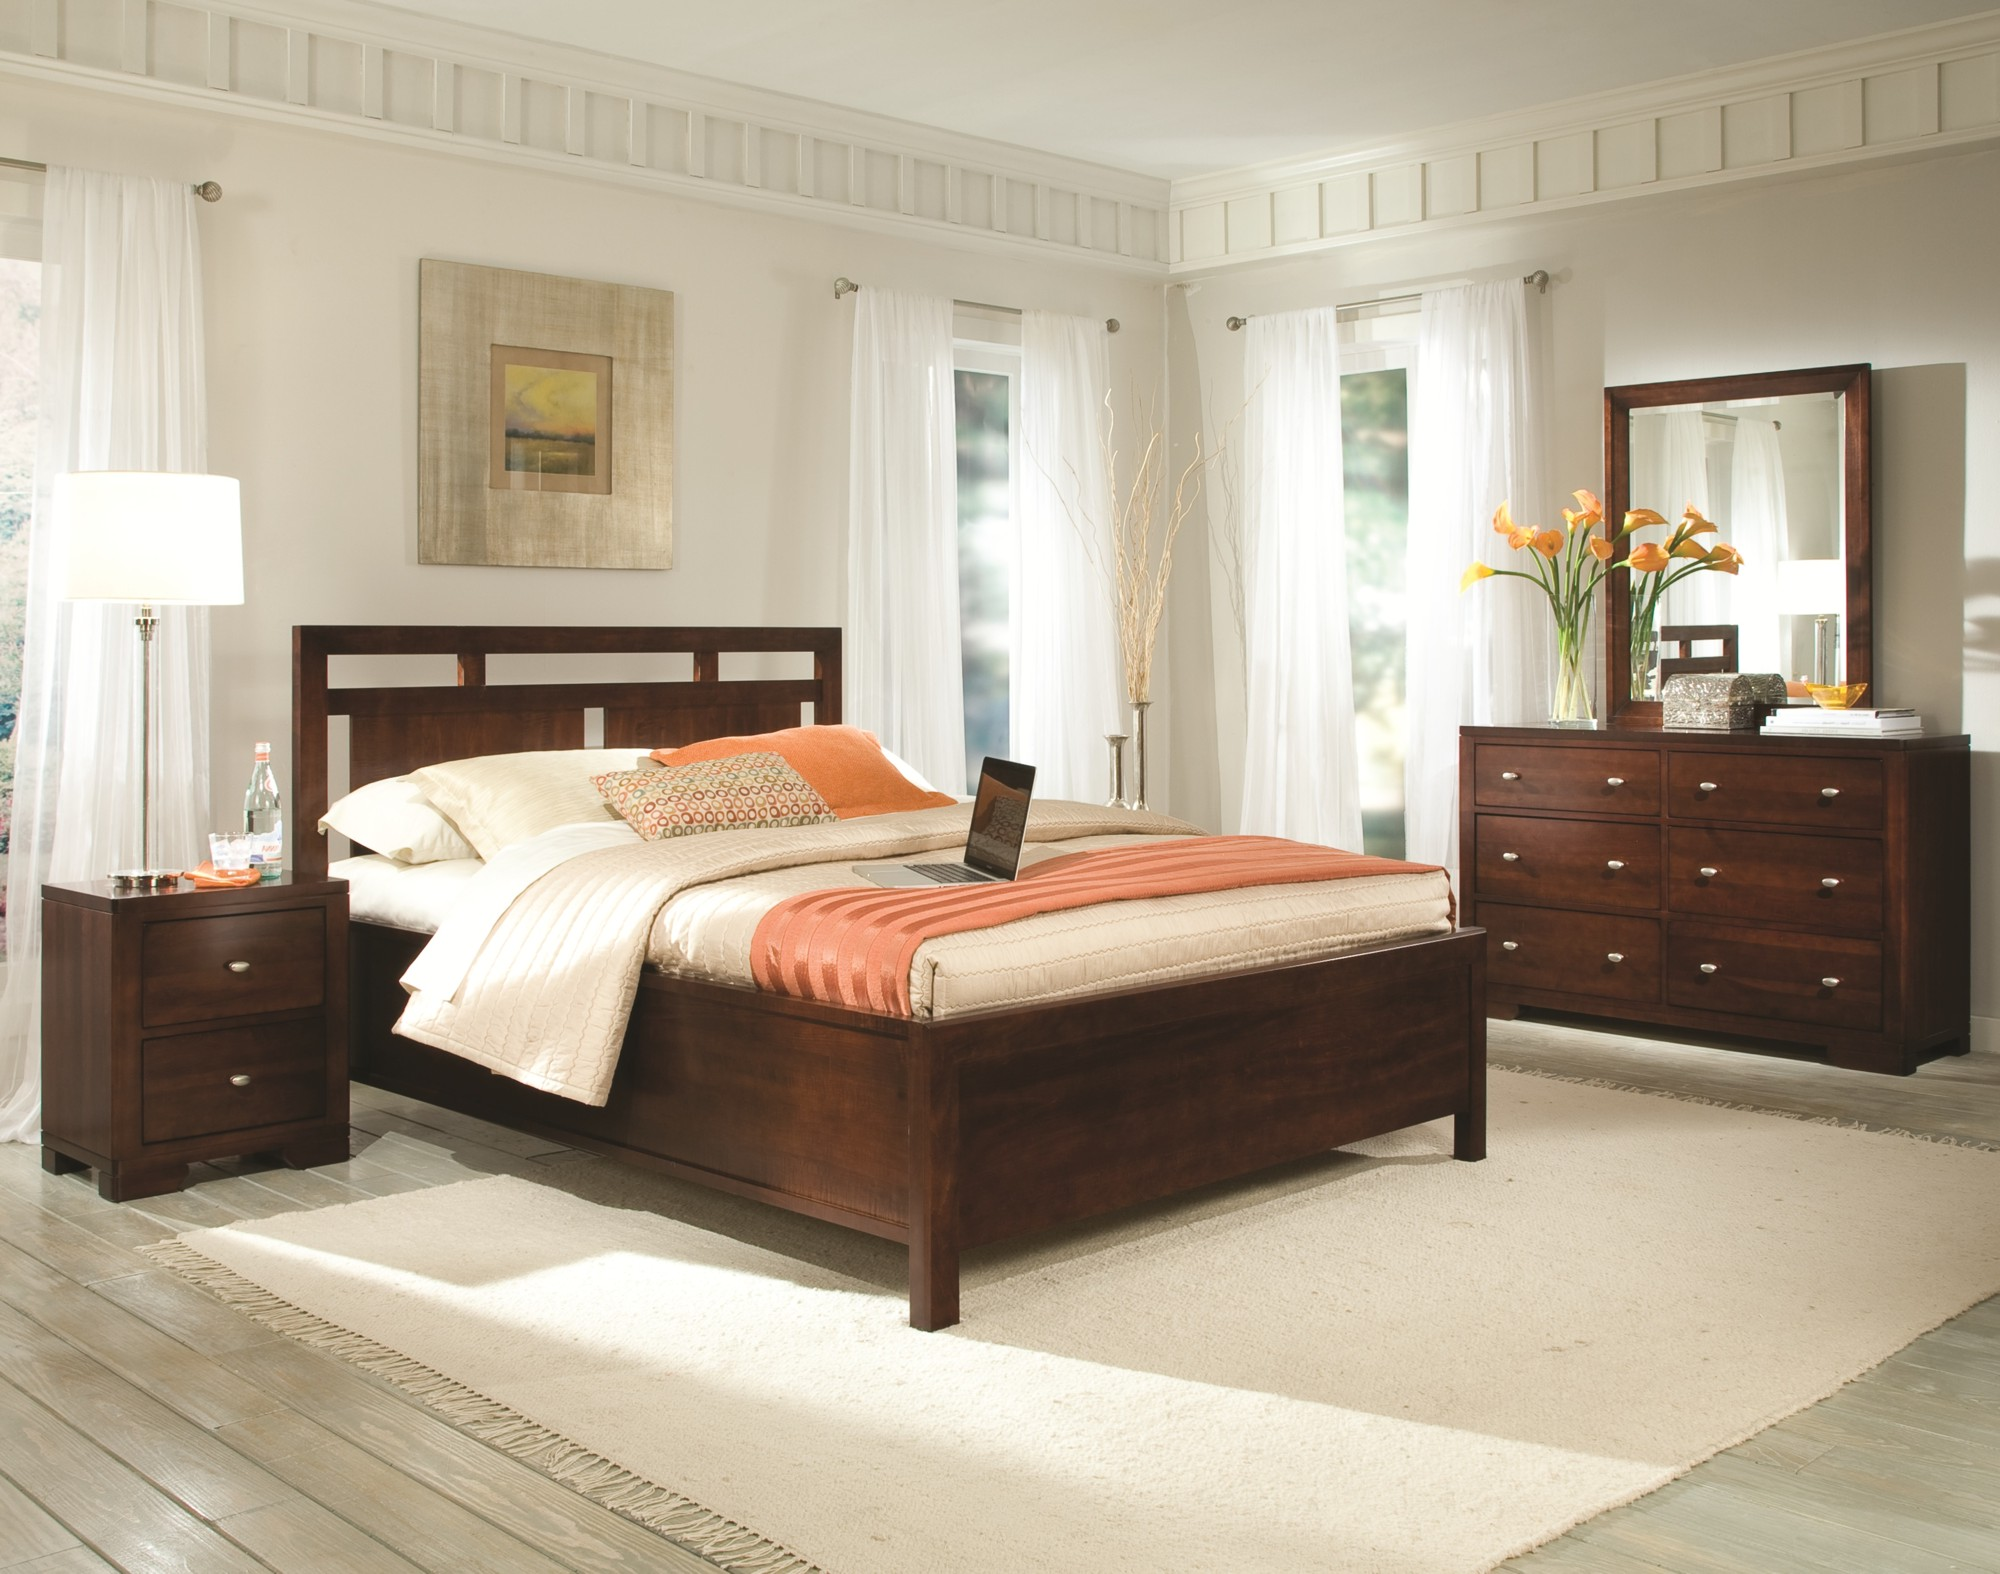 Perfect Balance Symmetry Bedroom Collection